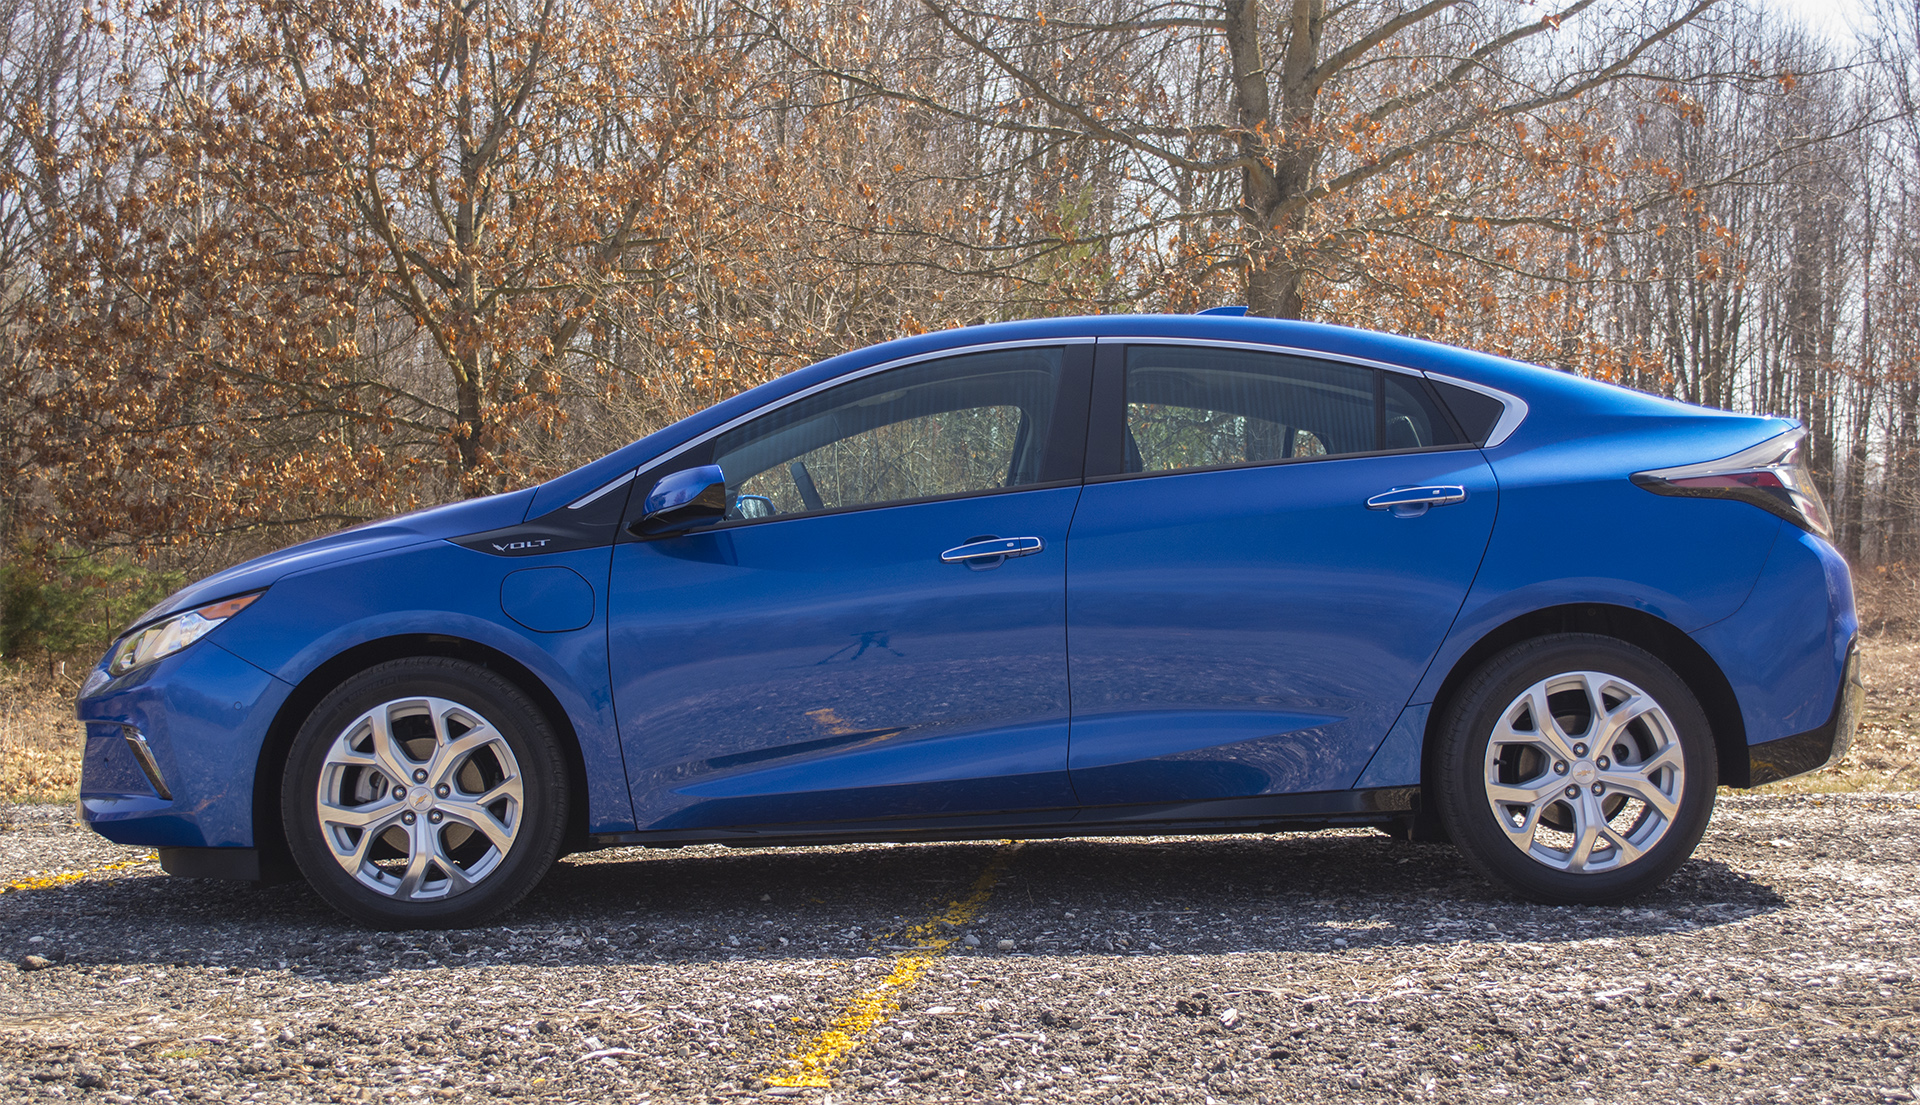 Elegant Review 2016 Chevrolet Volt Stands Out Among EVs